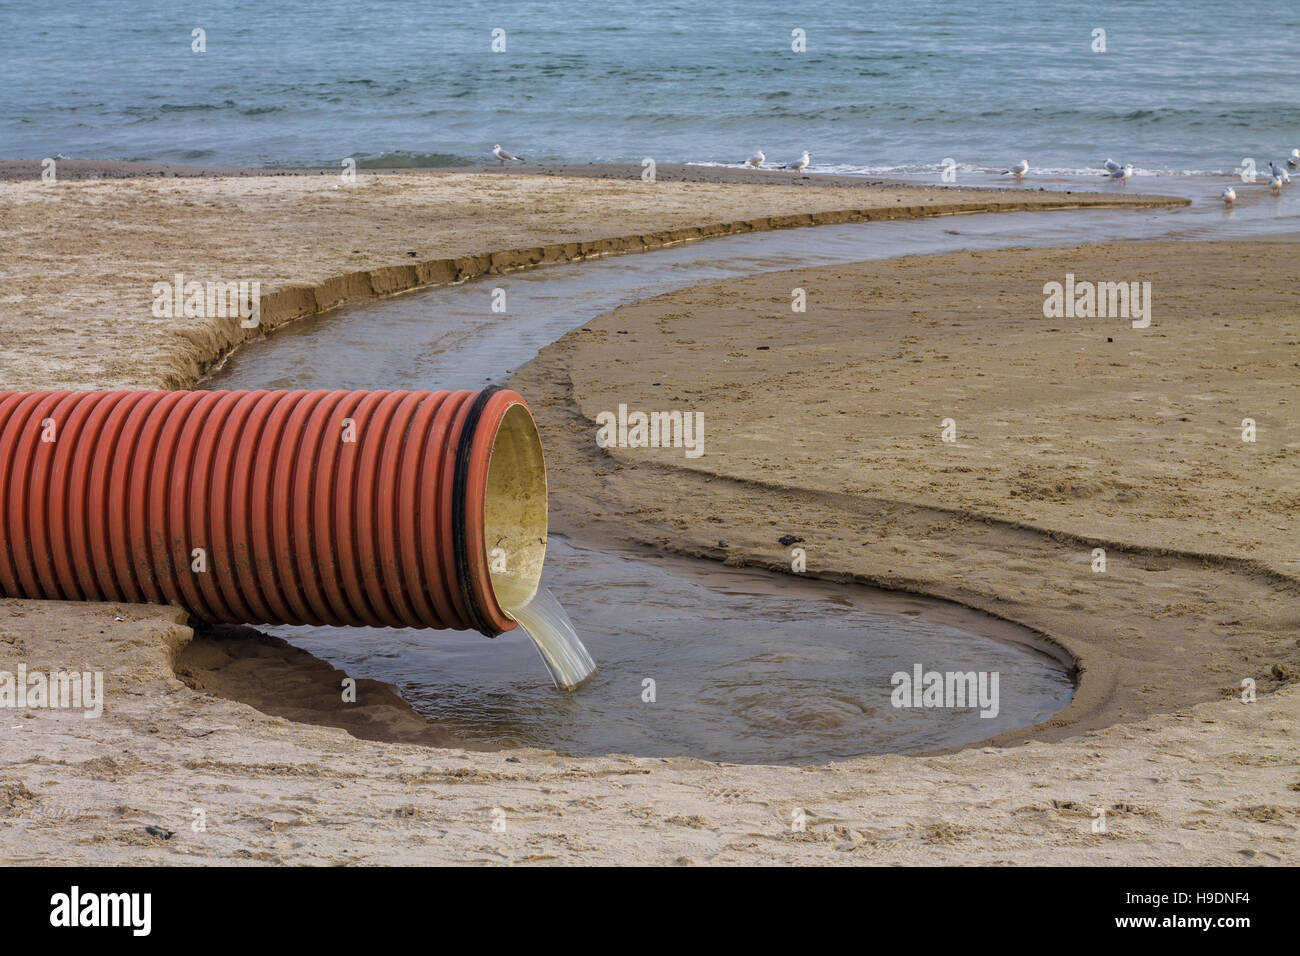 environmental pollution on the beach. Waste pipe or drainage polluting environment. Birds drink waste water - Stock Image